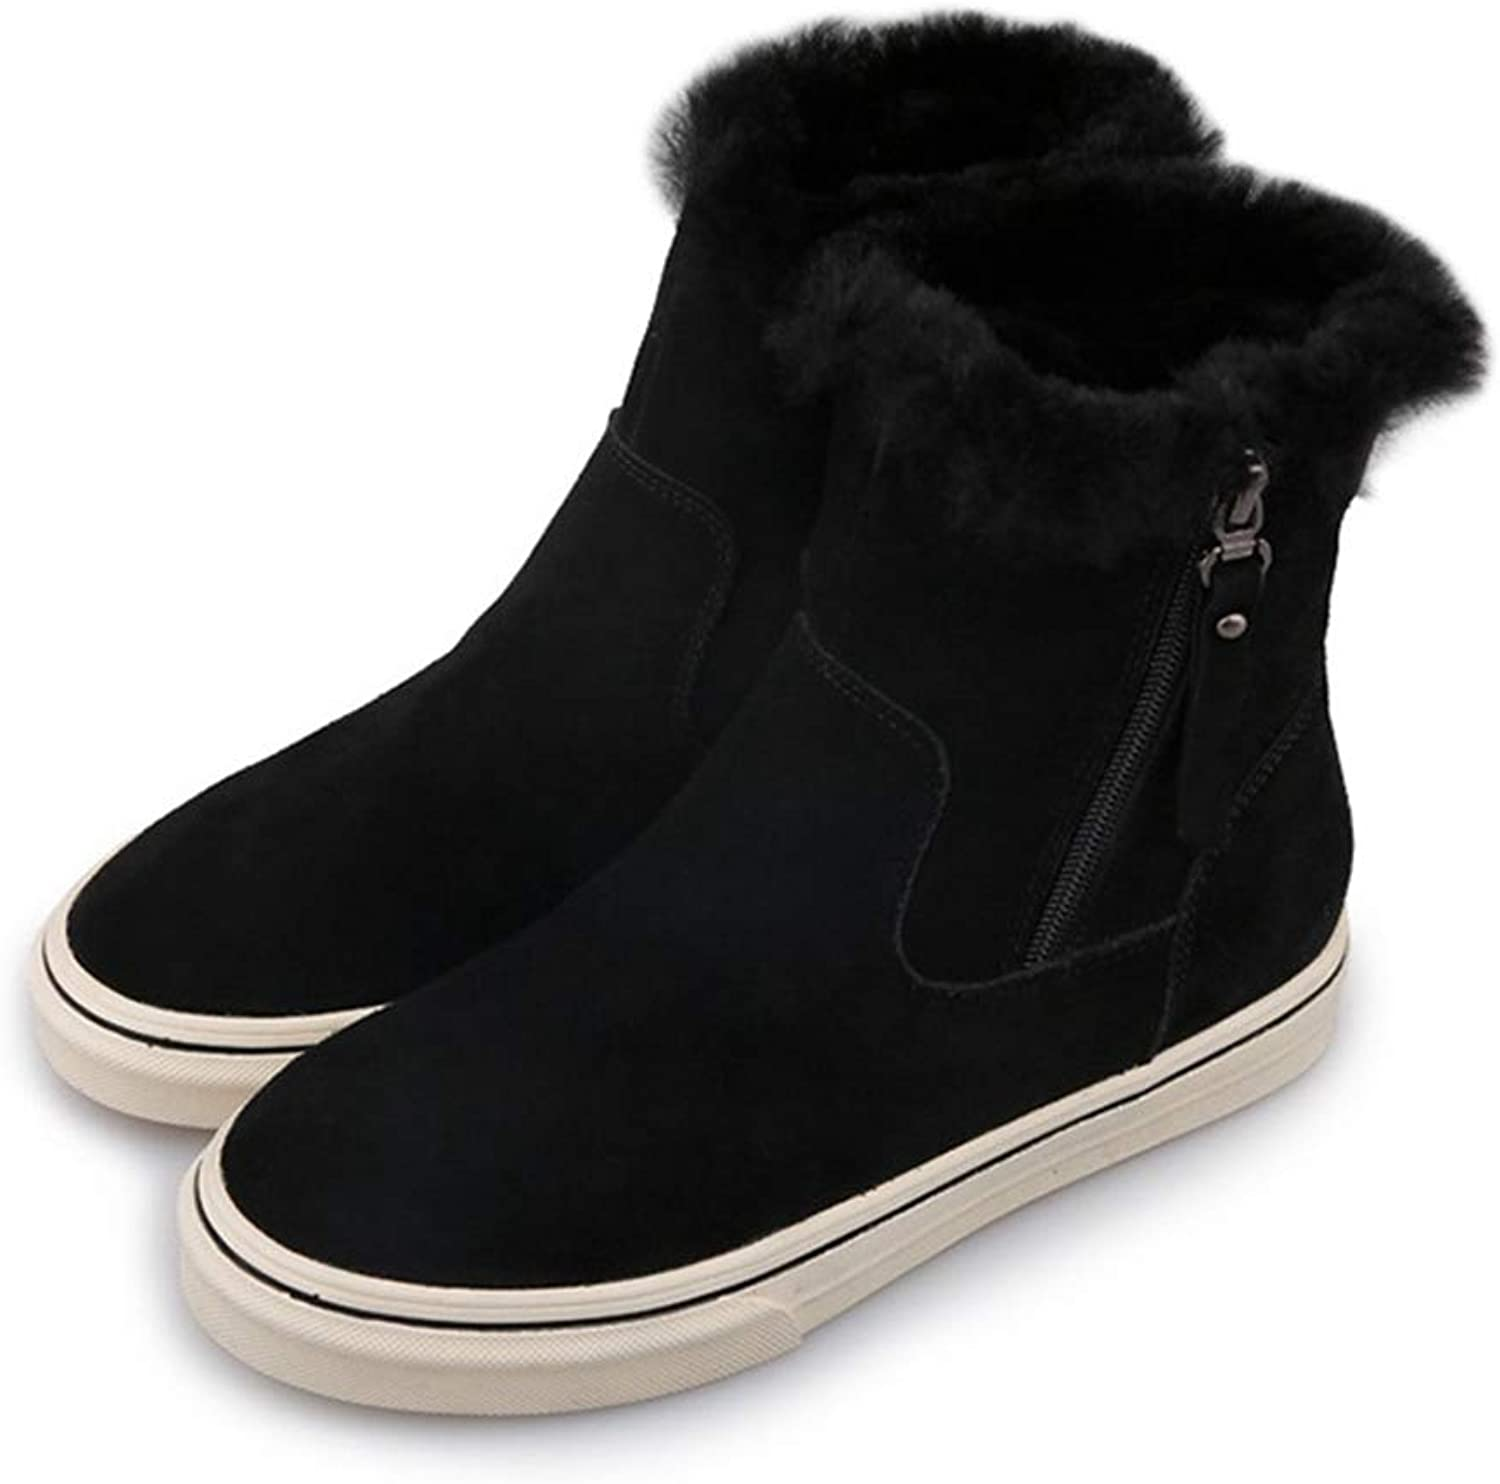 Kyle Walsh Pa Women's Boots Female Ankle Booties Warm Fur Soft Comfortable Winter Flats shoes